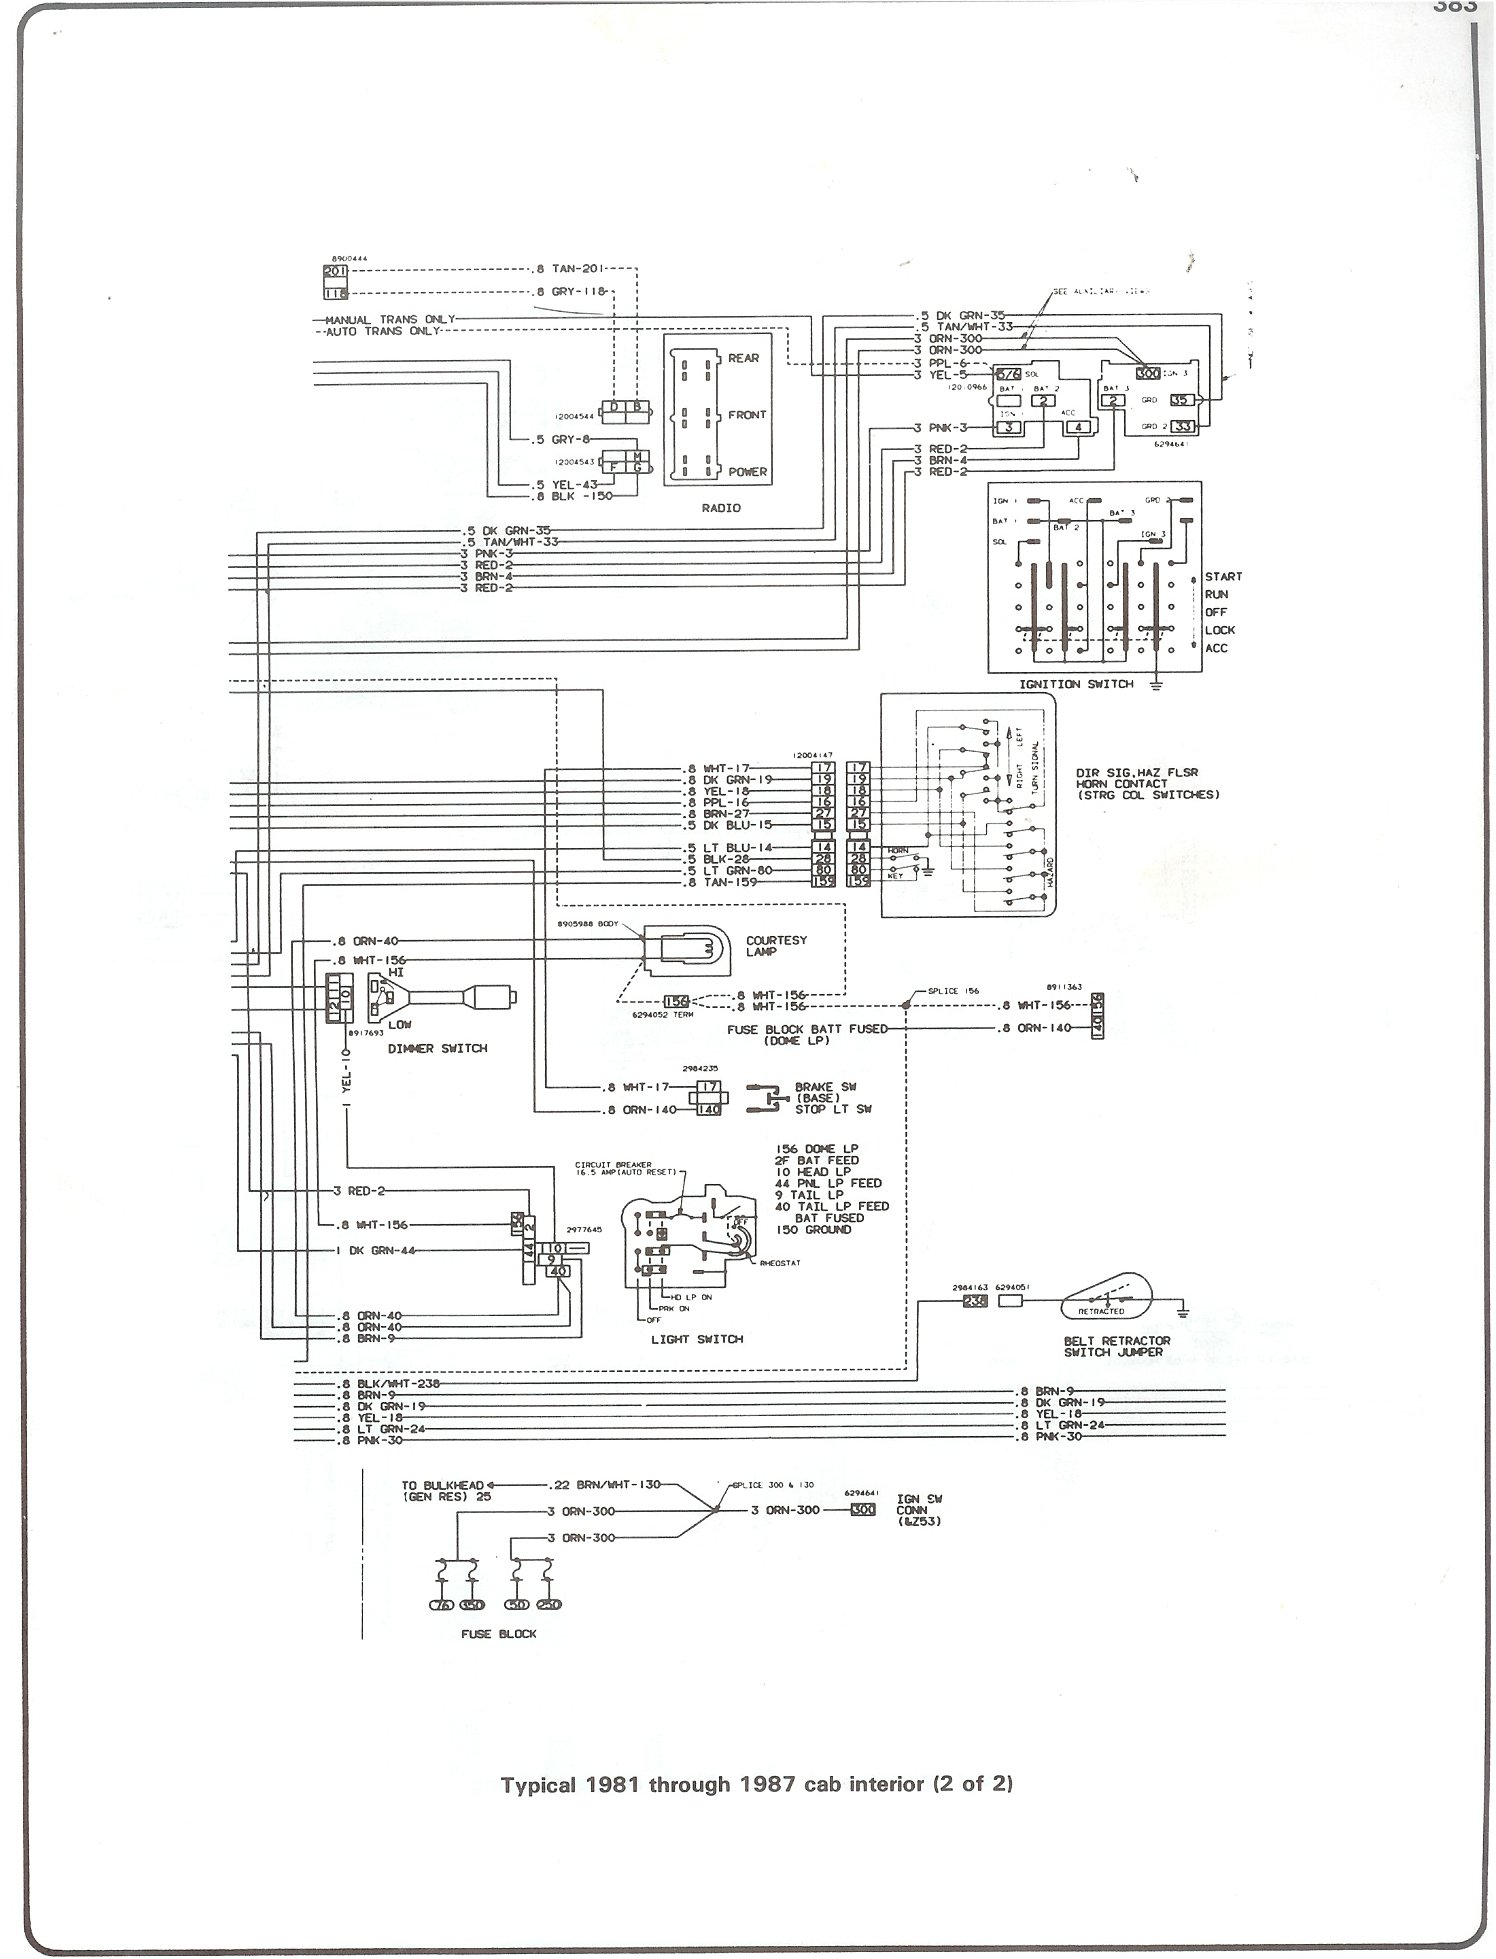 81 87_cab_inter_pg2 complete 73 87 wiring diagrams 1987 chevy wiring diagram at gsmportal.co